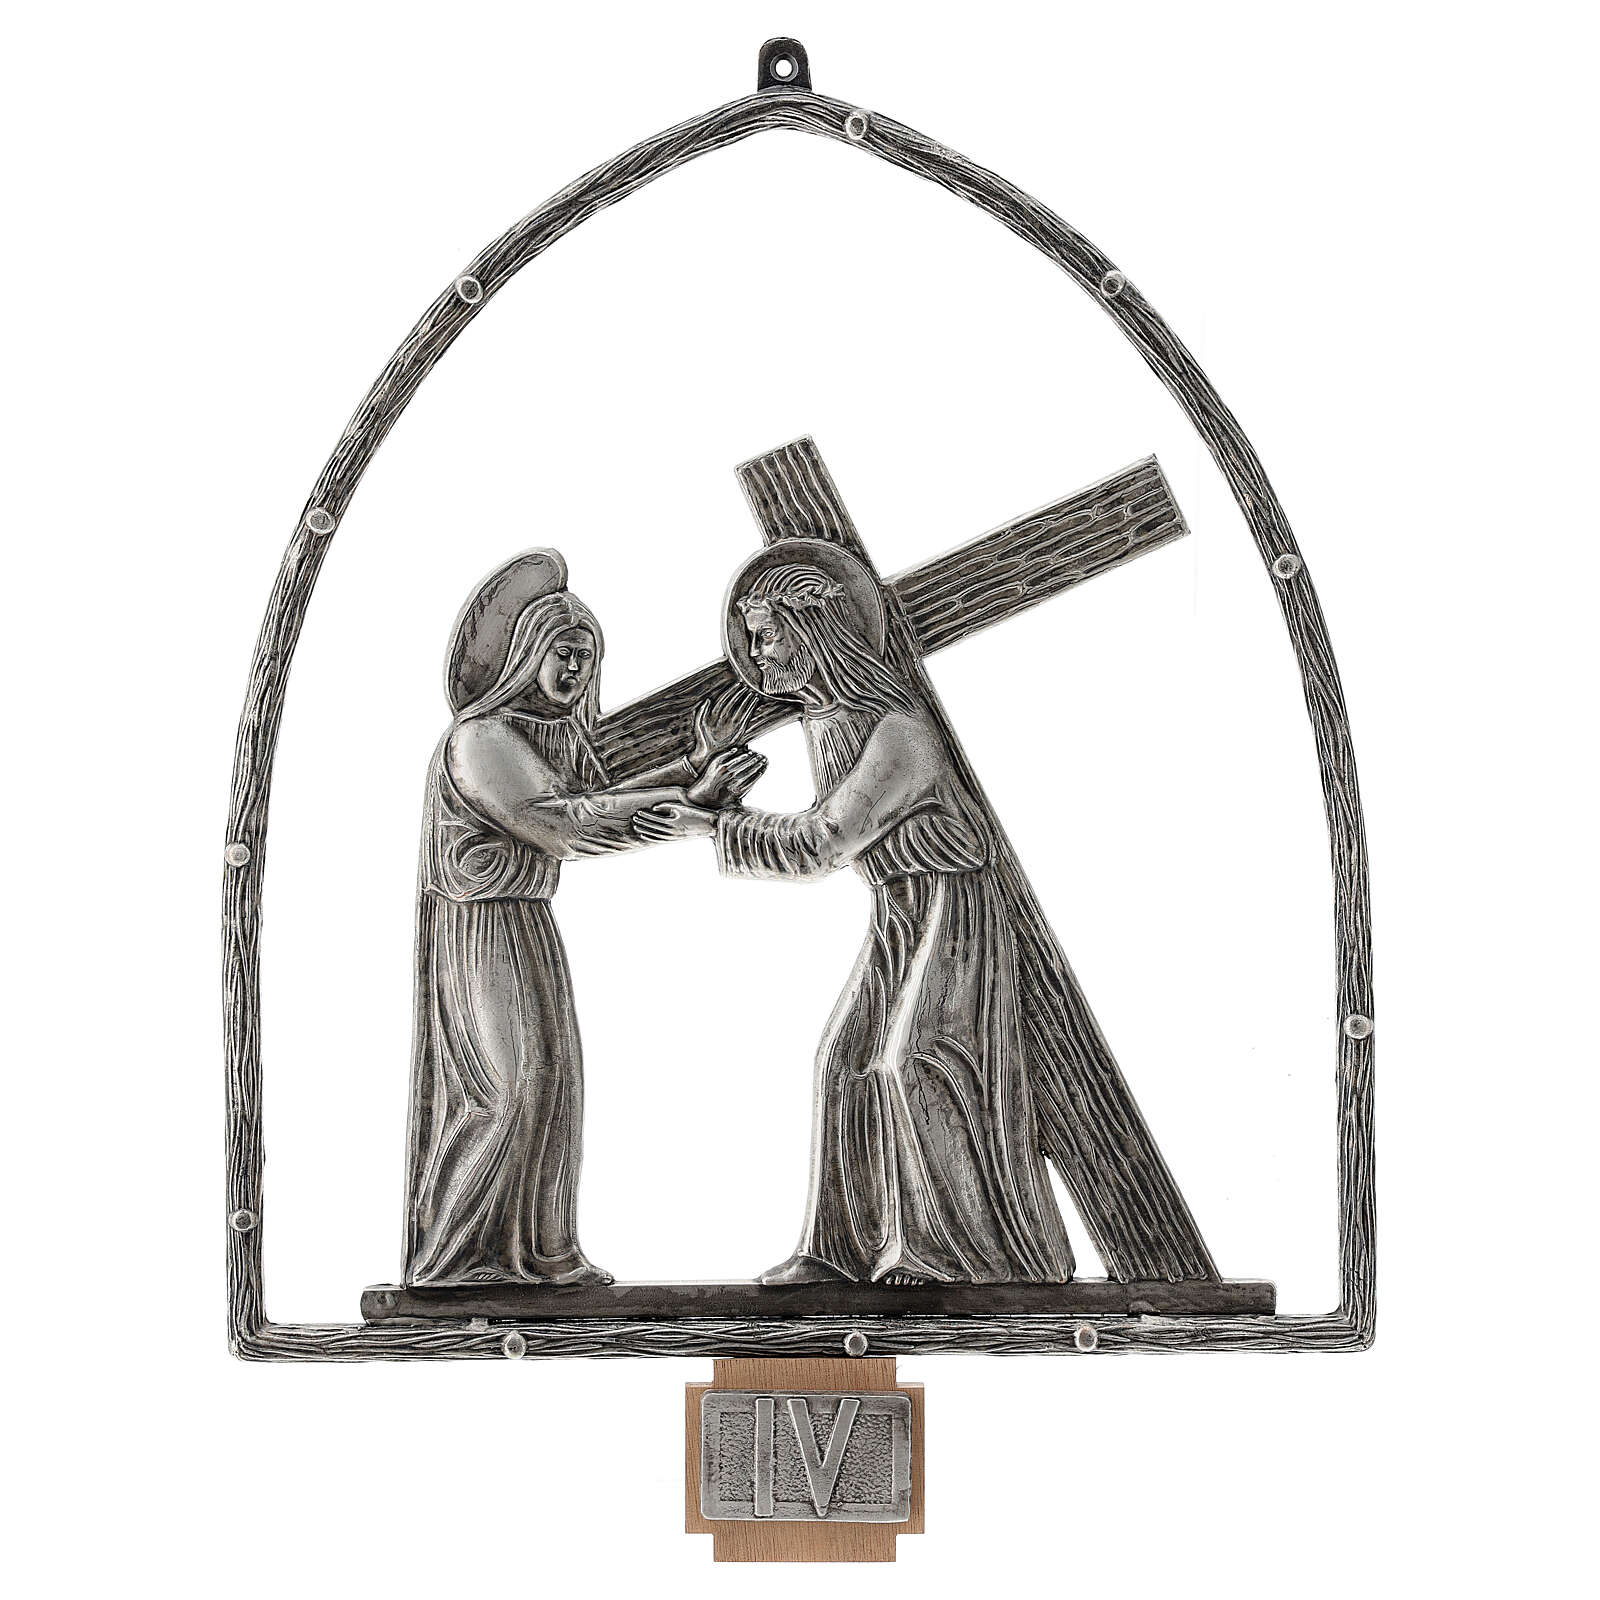 15 Stations of the Cross in silver plated bronze 4